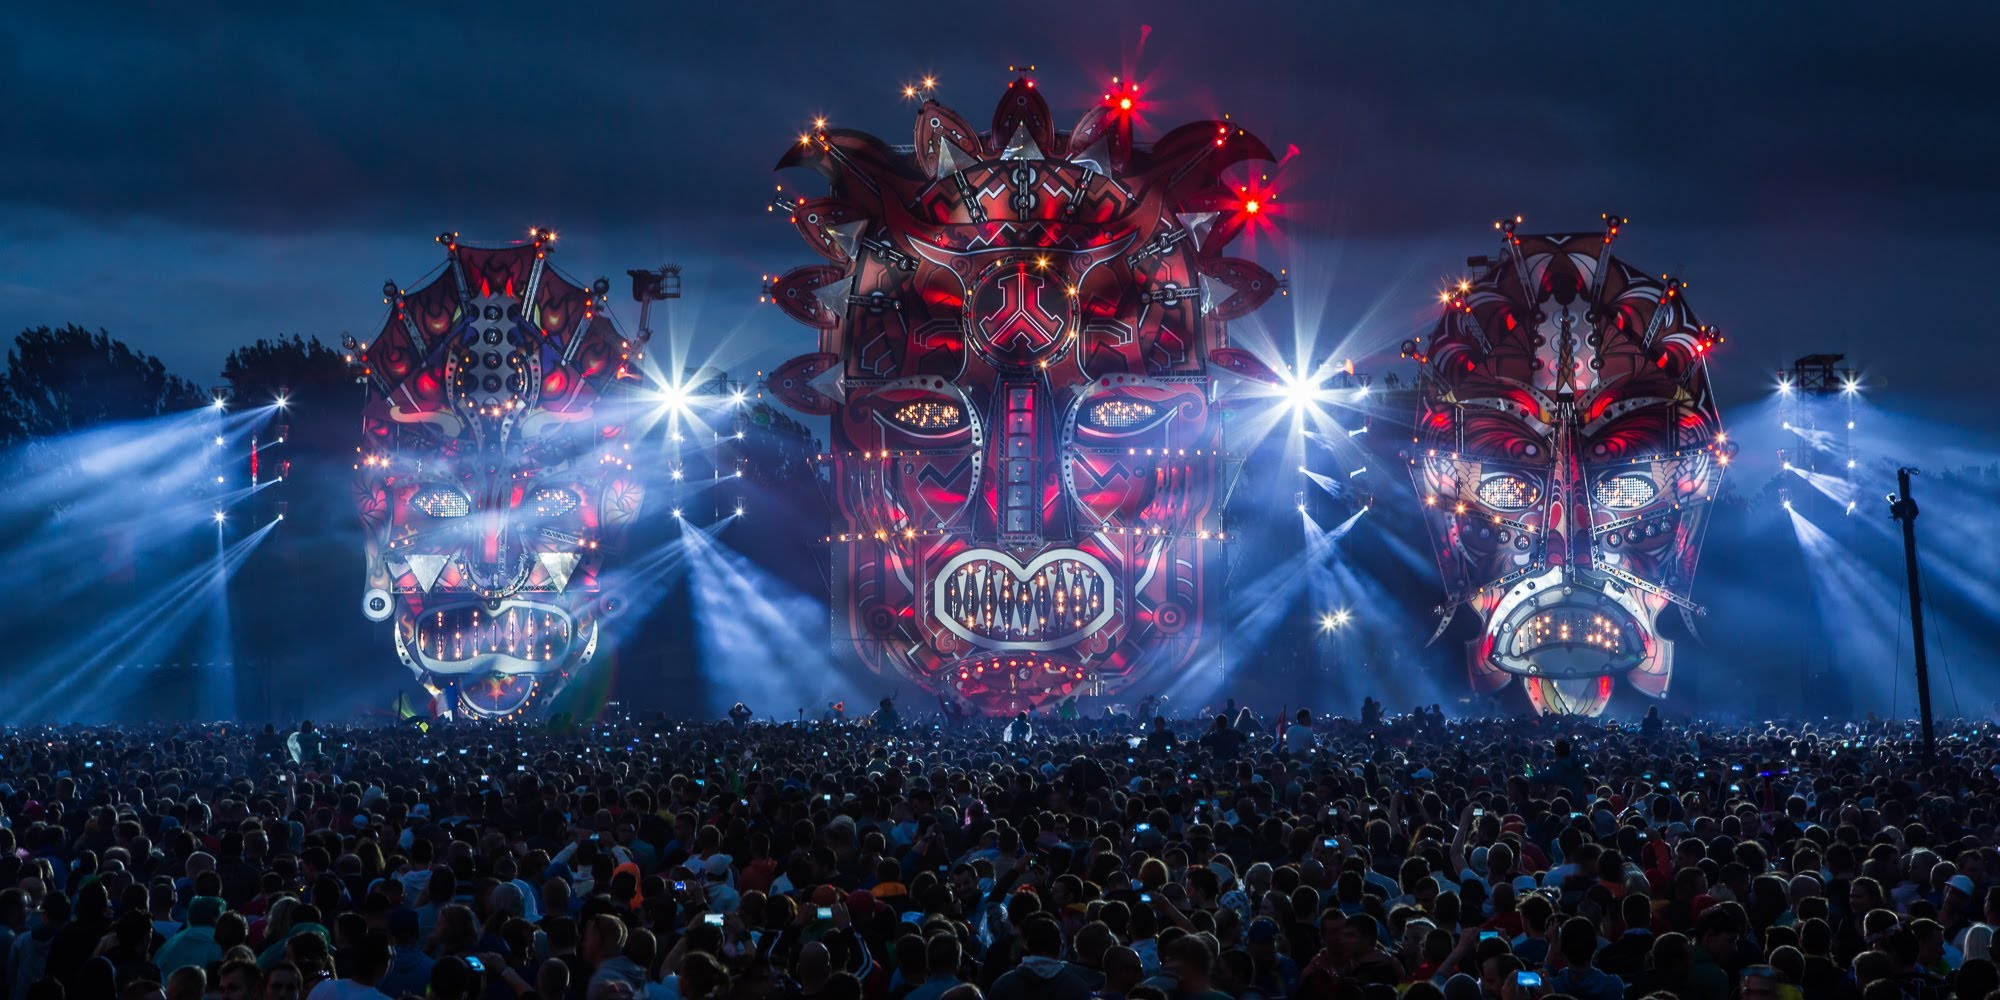 Defqon 1 2015 Dates Are Here! ‹ ALIVE AT NIGHT – Hard Dance